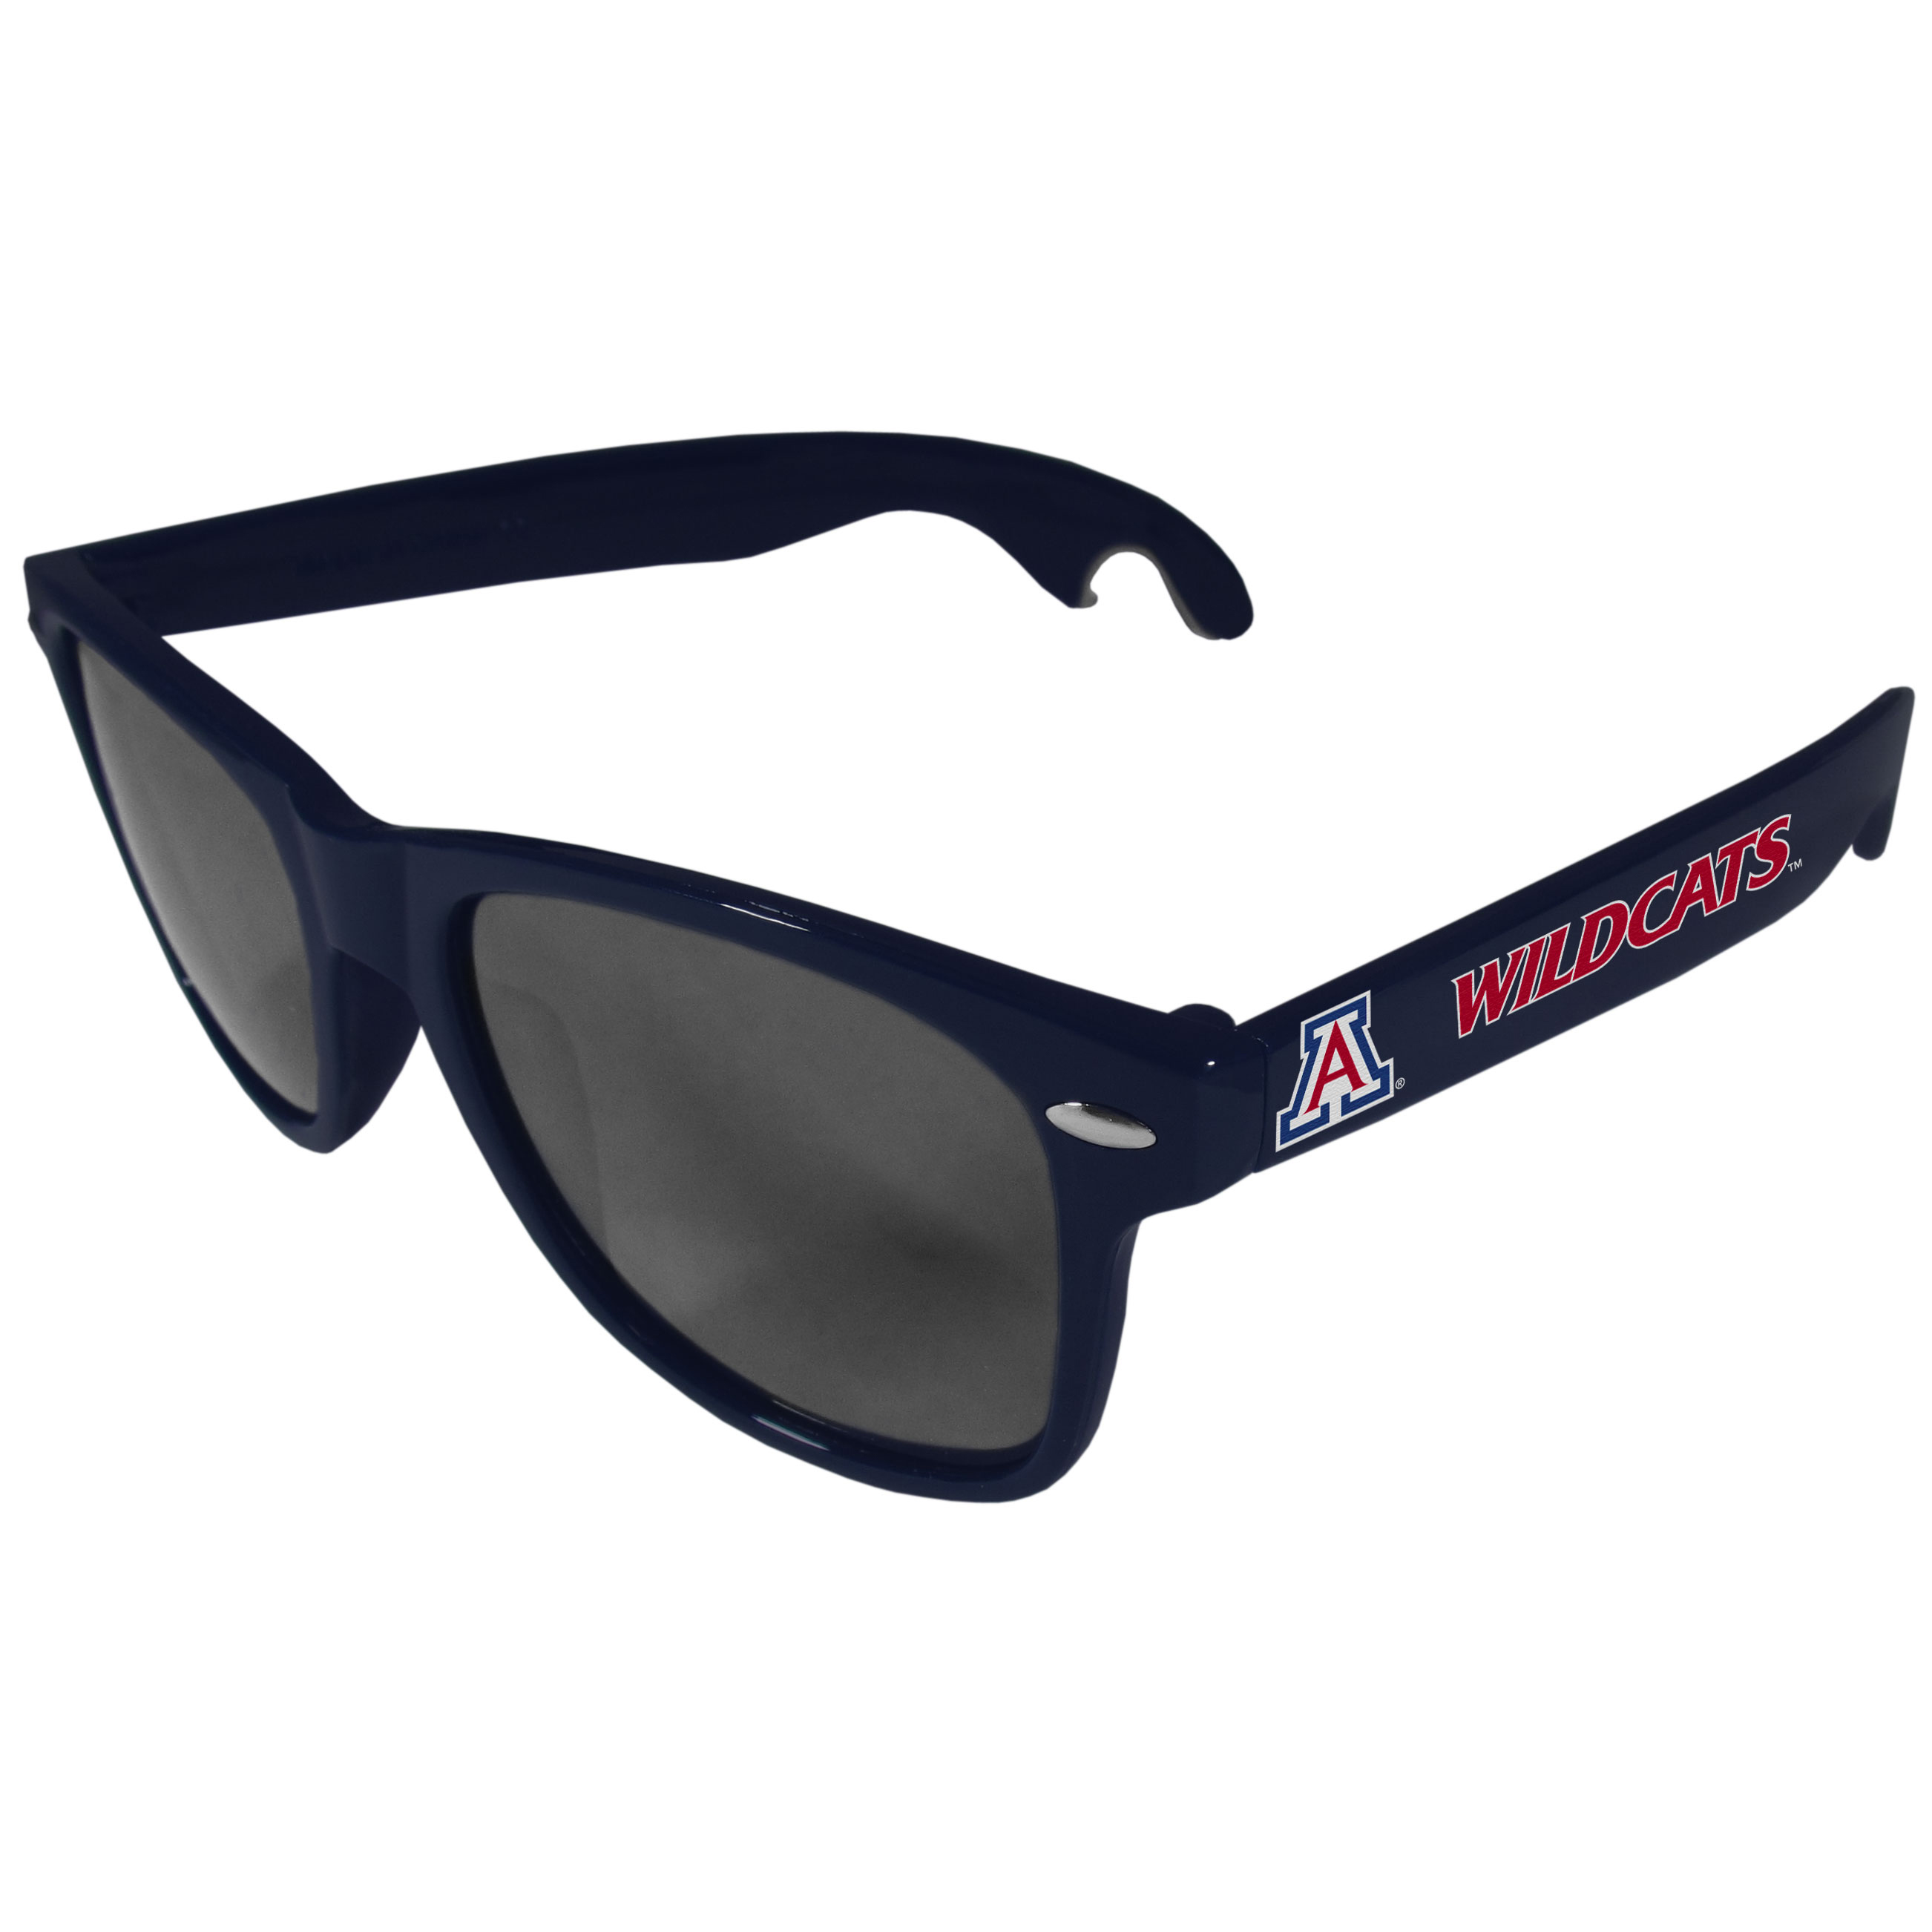 Arizona Wildcats Beachfarer Bottle Opener Sunglasses, Dark Blue - Seriously, these sunglasses open bottles! Keep the party going with these amazing Arizona Wildcats bottle opener sunglasses. The stylish retro frames feature team designs on the arms and functional bottle openers on the end of the arms. Whether you are at the beach or having a backyard BBQ on game day, these shades will keep your eyes protected with 100% UVA/UVB protection and keep you hydrated with the handy bottle opener arms.